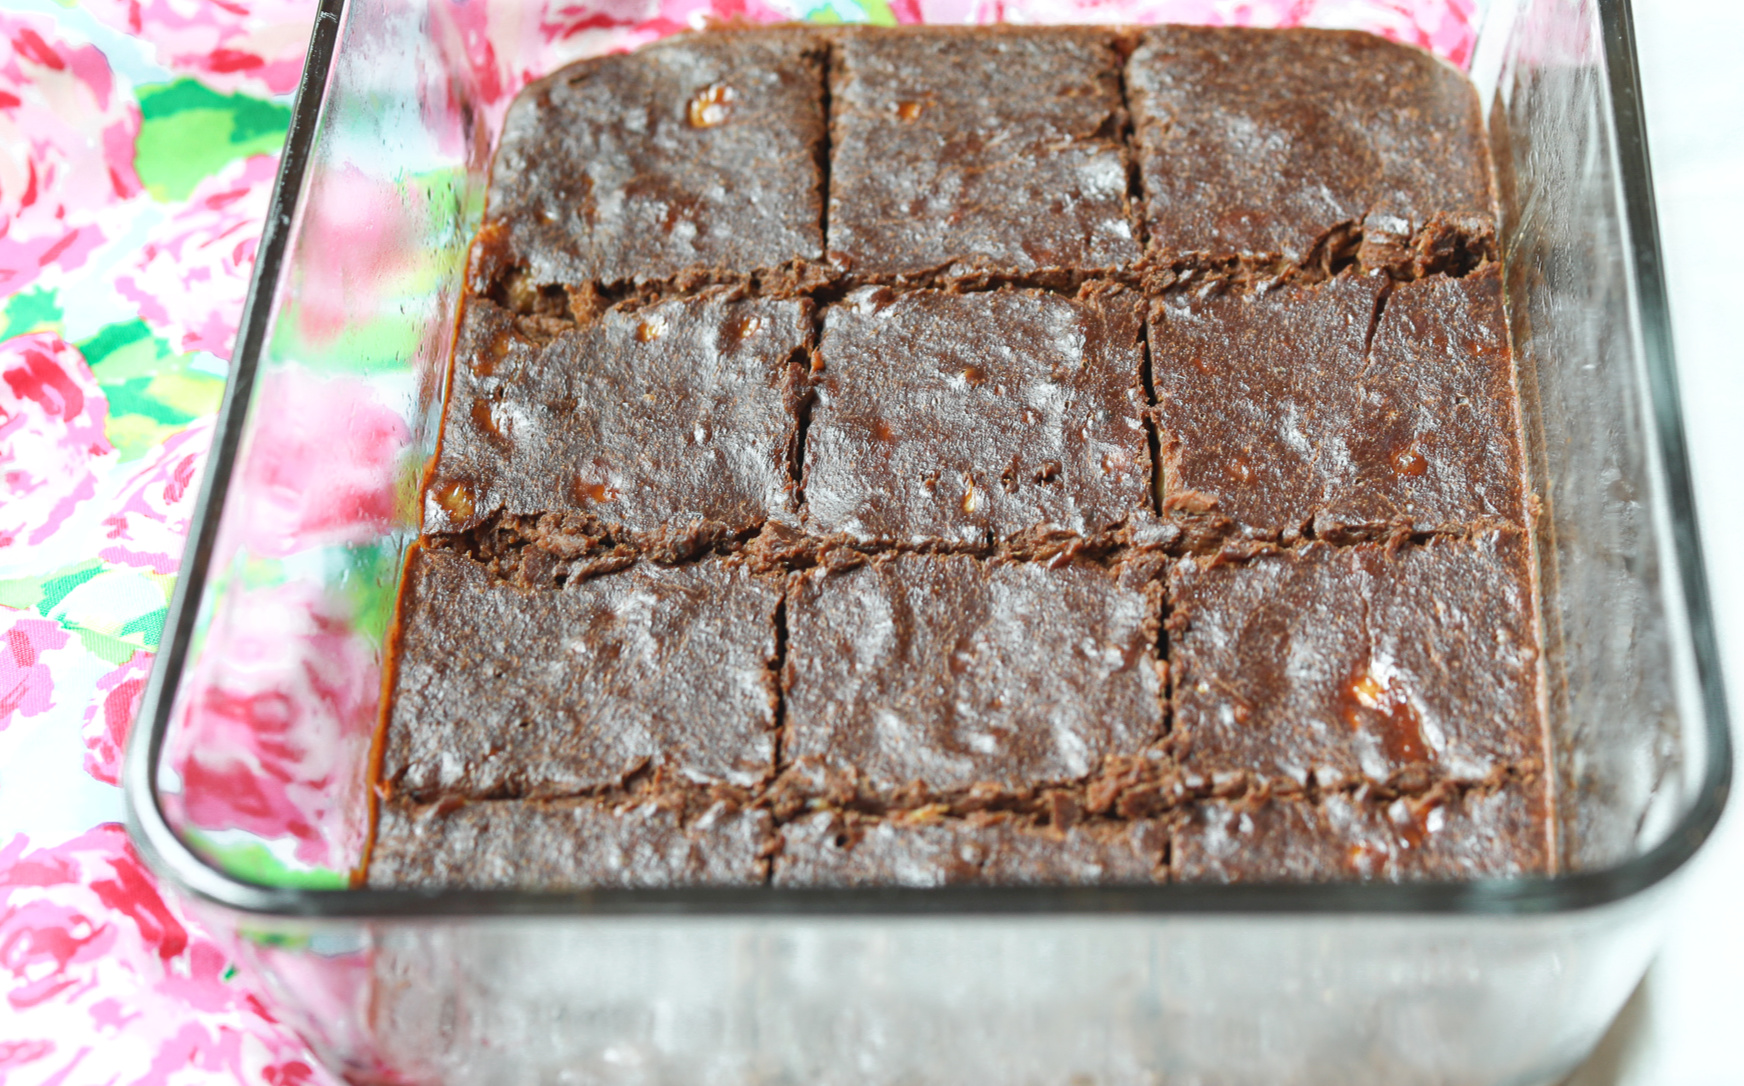 three-ingredient brownies, 3-ingredient brownies- paleo brownies, whole30 brownies, whole30 compliant, whole30 ingredients, whole30 cravings, whole30 dessert, low carb, Whole Foods, dairy free, organic, vegan, plant based, low calorie, healthier food, summer, light, trick your kids, banana, cashew, nut butter, almond butter, banana, low carb, plant based desserts, baking, healthy food, back to school treats, vegan cosmic brownie, gluten free, dairy free, no peanuts, legume free, diet, weight loss brownies, healthy snacking